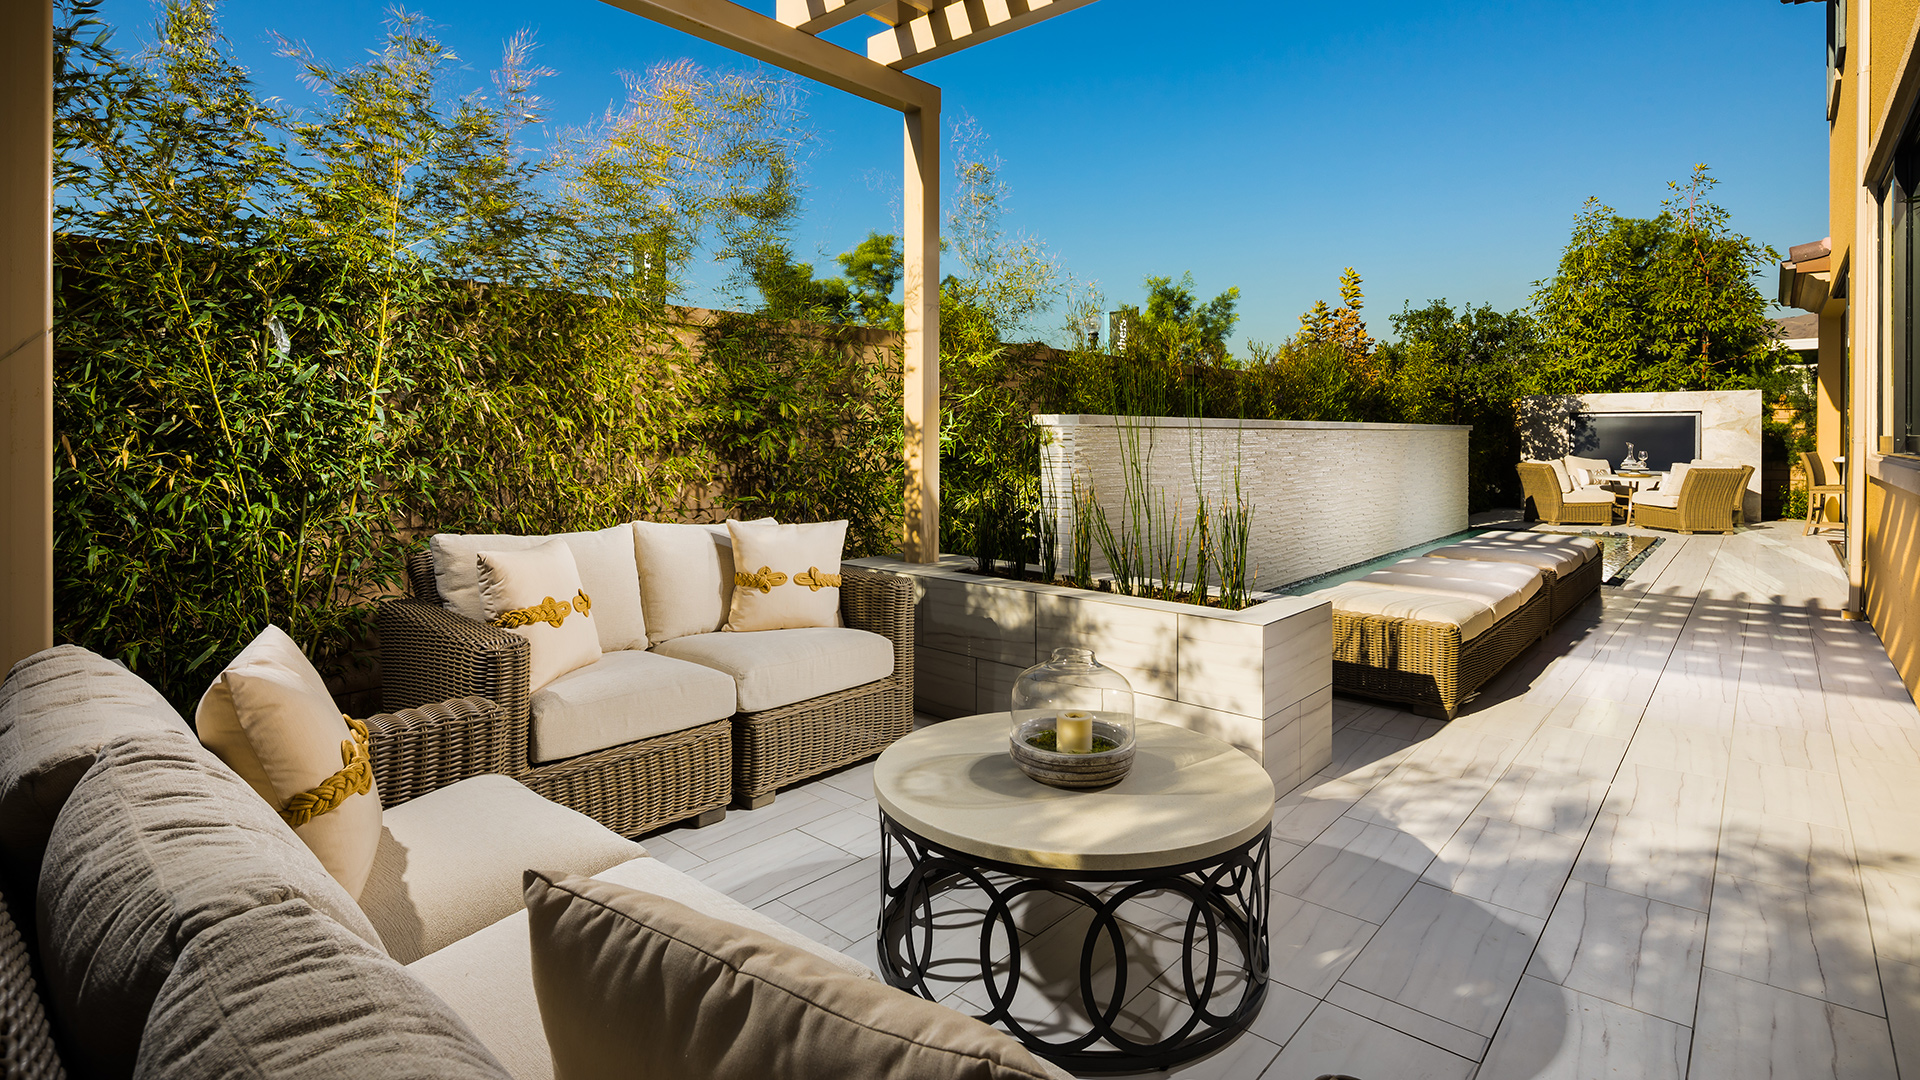 Intimate backyards are ideal for relaxing after a long day.